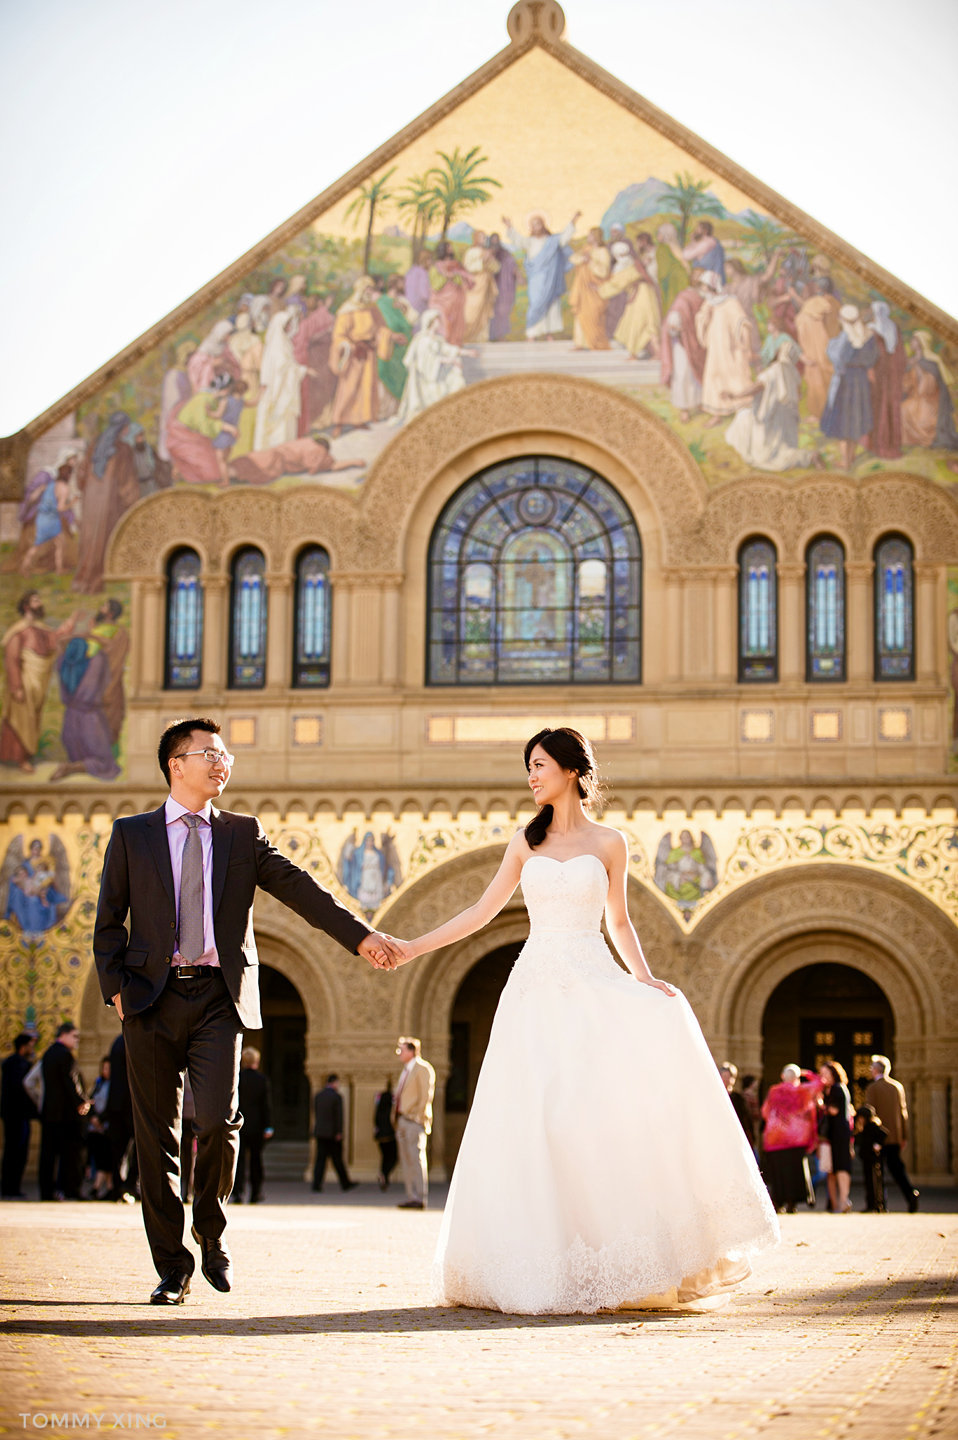 San Francisco Bay Area Chinese Pre Wedding Photographer Tommy Xing 旧金山湾区婚纱照摄影 28.jpg